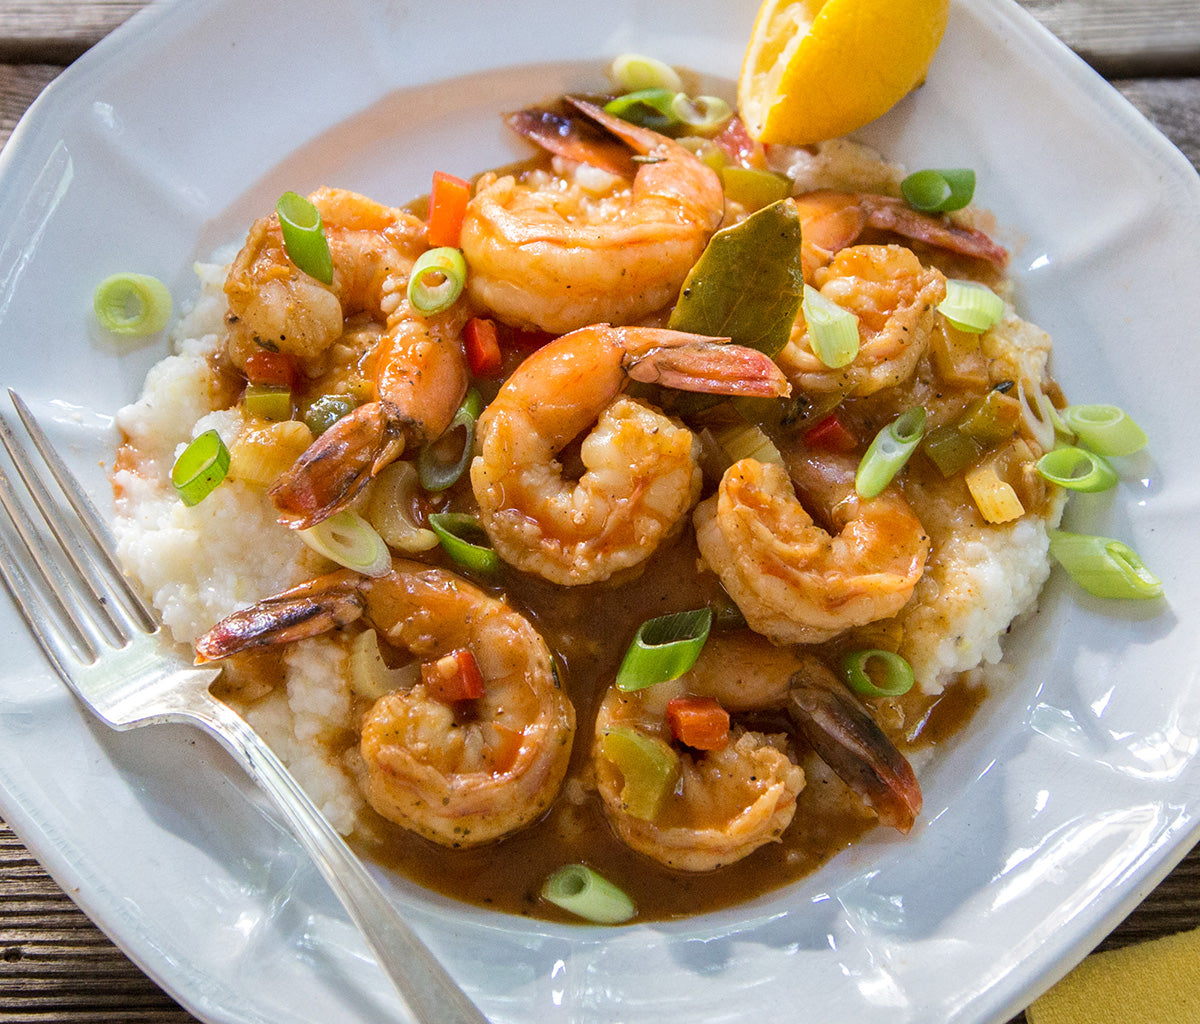 lousiana-bbq-shrimp-creole-on-stone-ground-grits-closeup